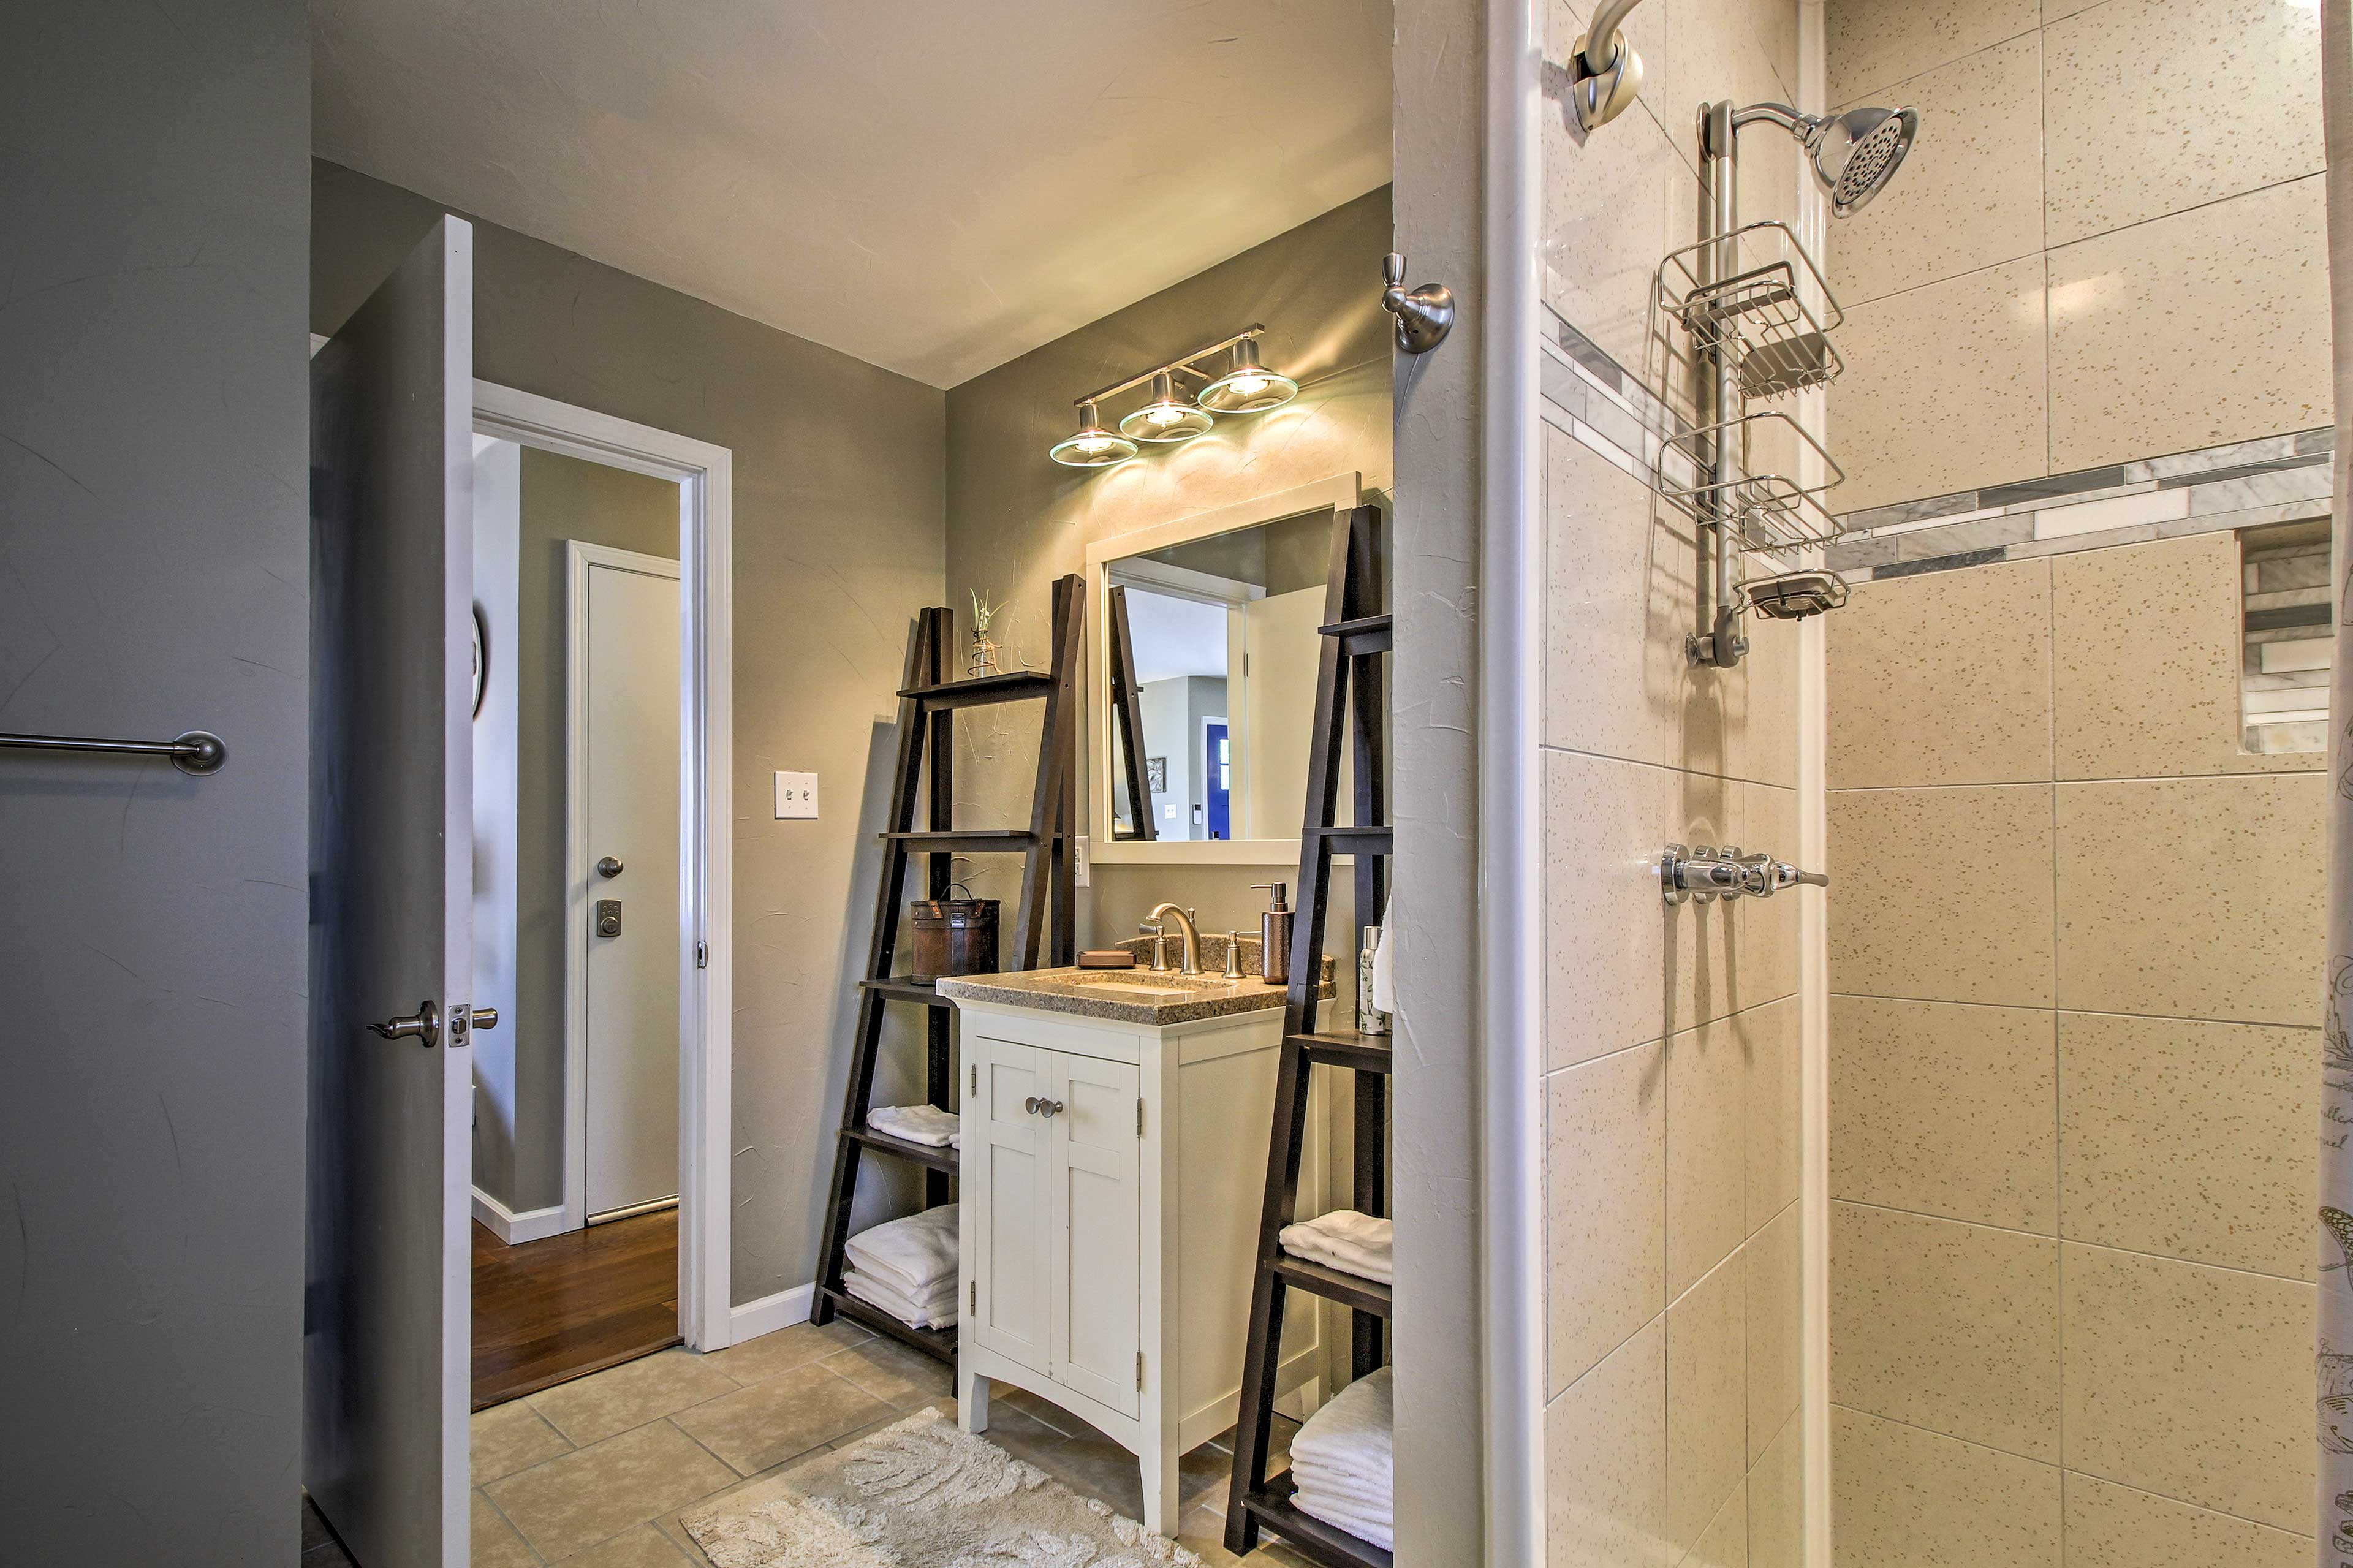 Fresh towels and linens are provided in the hallway bath with a walk-in shower.